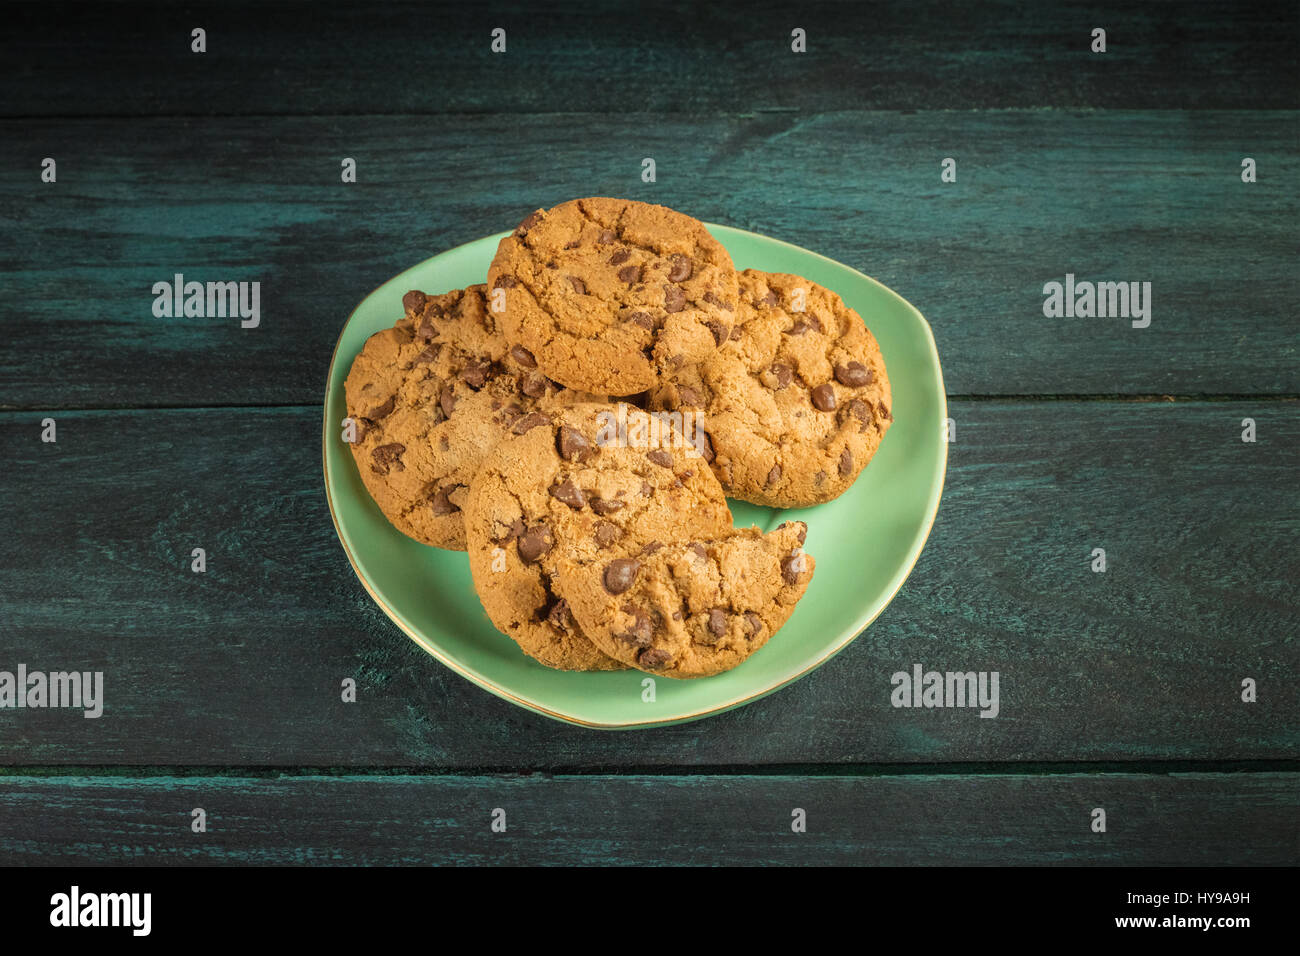 A teal plate of chocolate chips cookies with copyspace - Stock Image